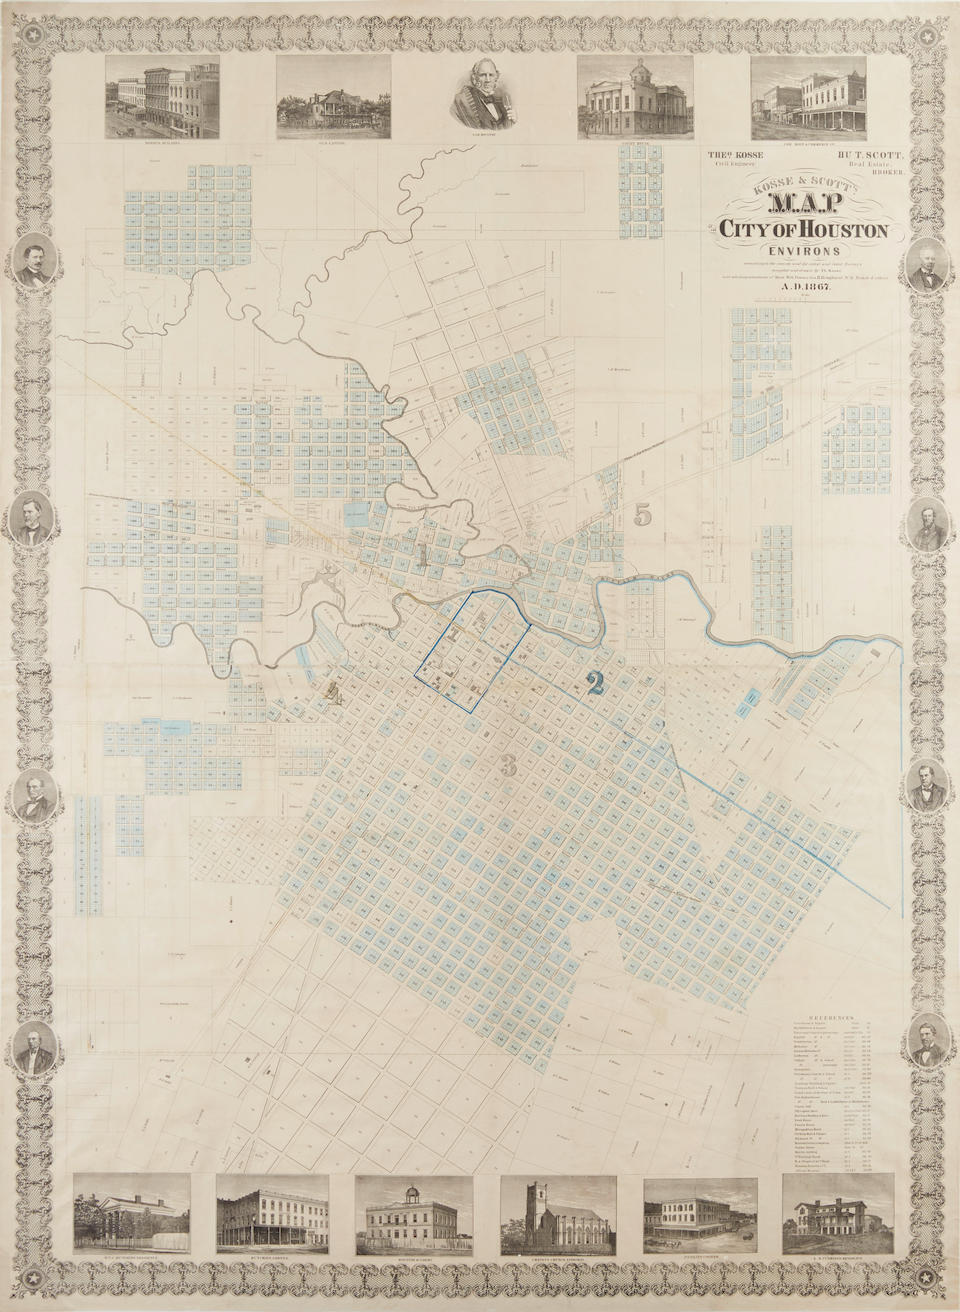 KOSSE, THEODORE, AND T. SCOTT. Map of the City of Houston and Environs... according to the latest Survey's compiled and drawn by Th. Kosse. Houston: 1867.